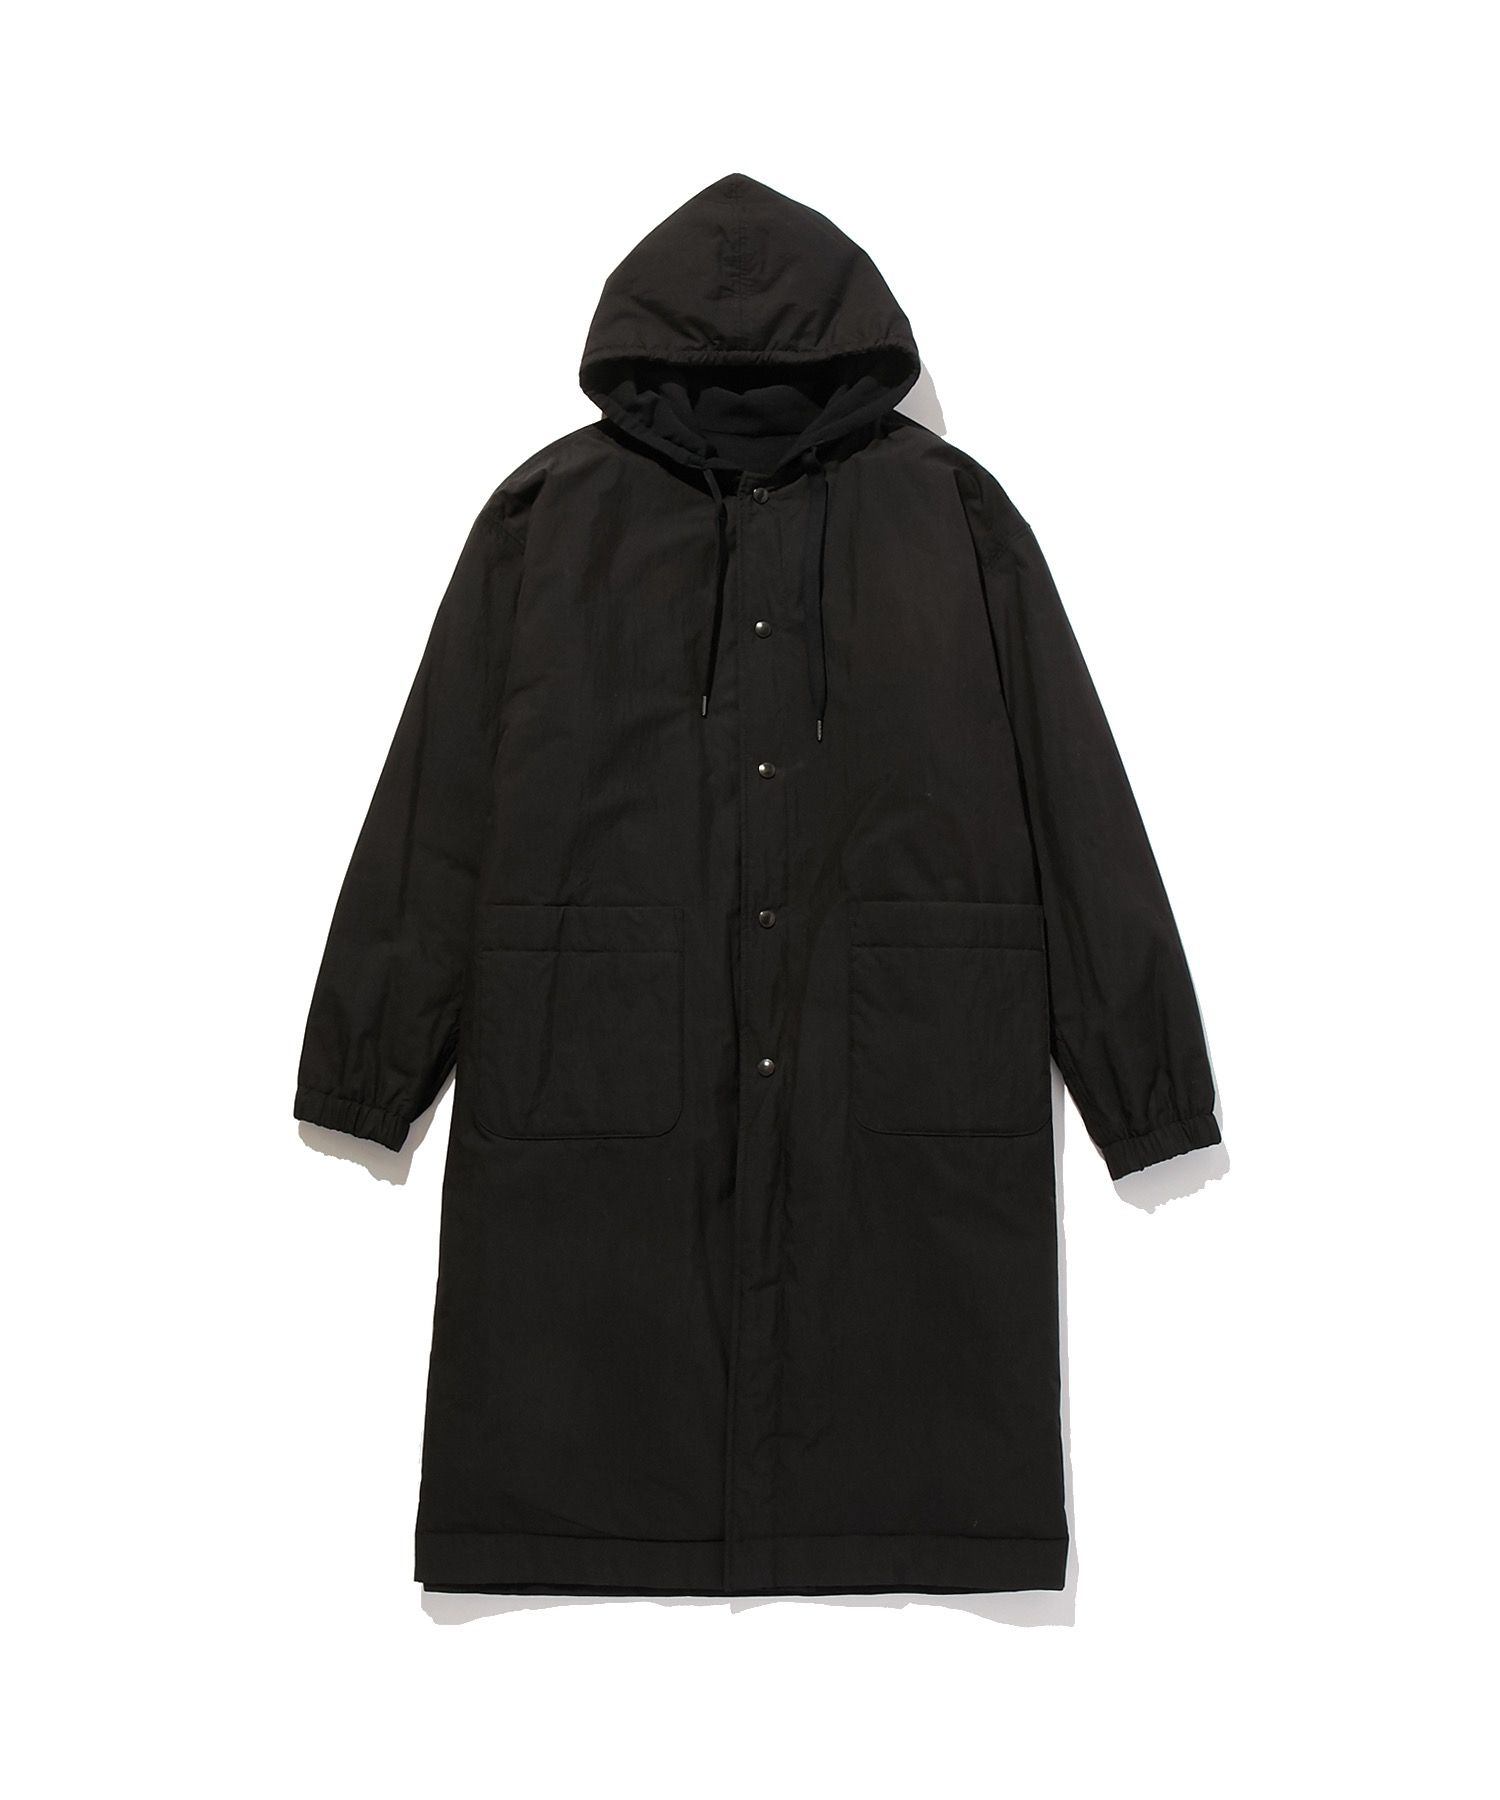 FALL2019 REVERSIBLE LONG COAT